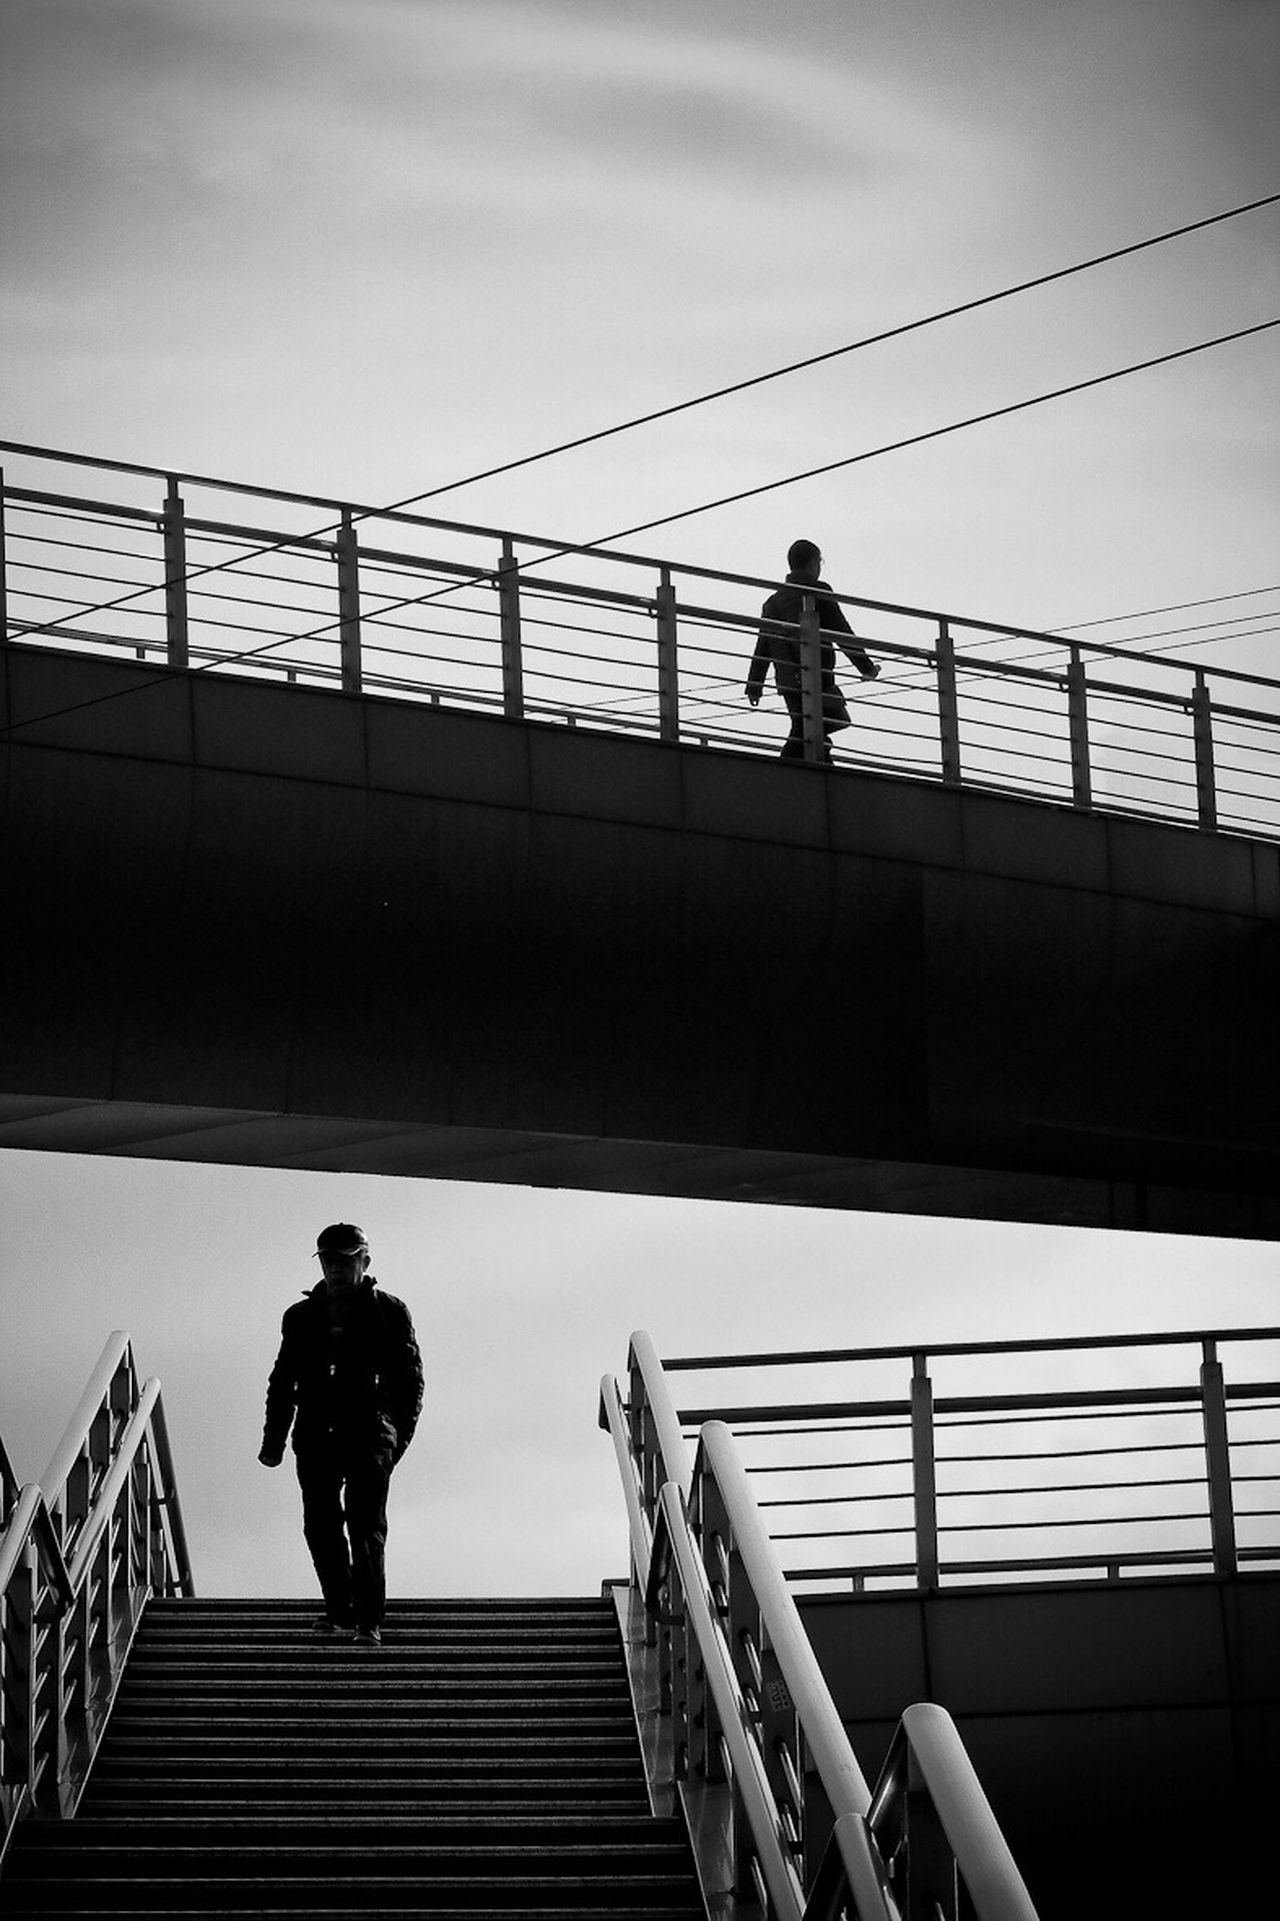 two orientations Black And White Overbridge Persons Divergency Outdoors Lifestyles City Life Sky Shanghai changfu promotes China overpasses